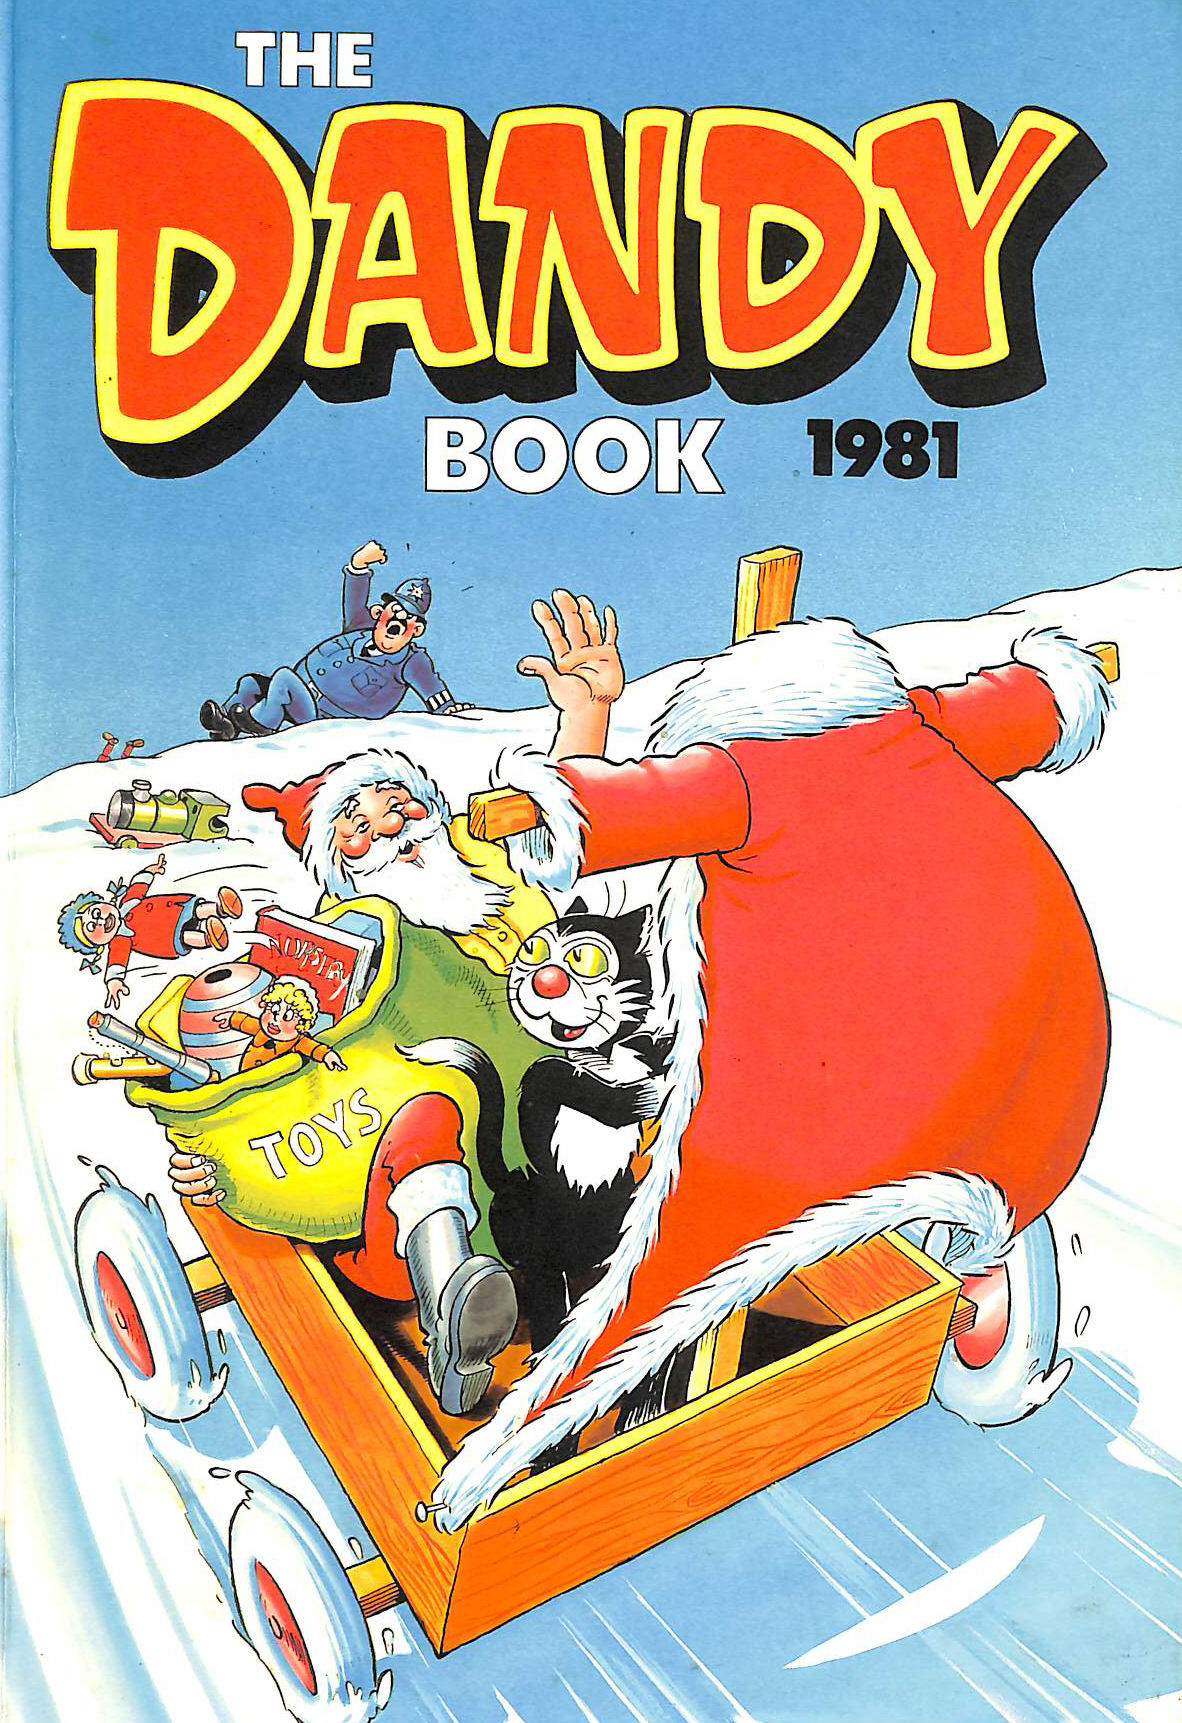 Image for The Dandy Book 1981